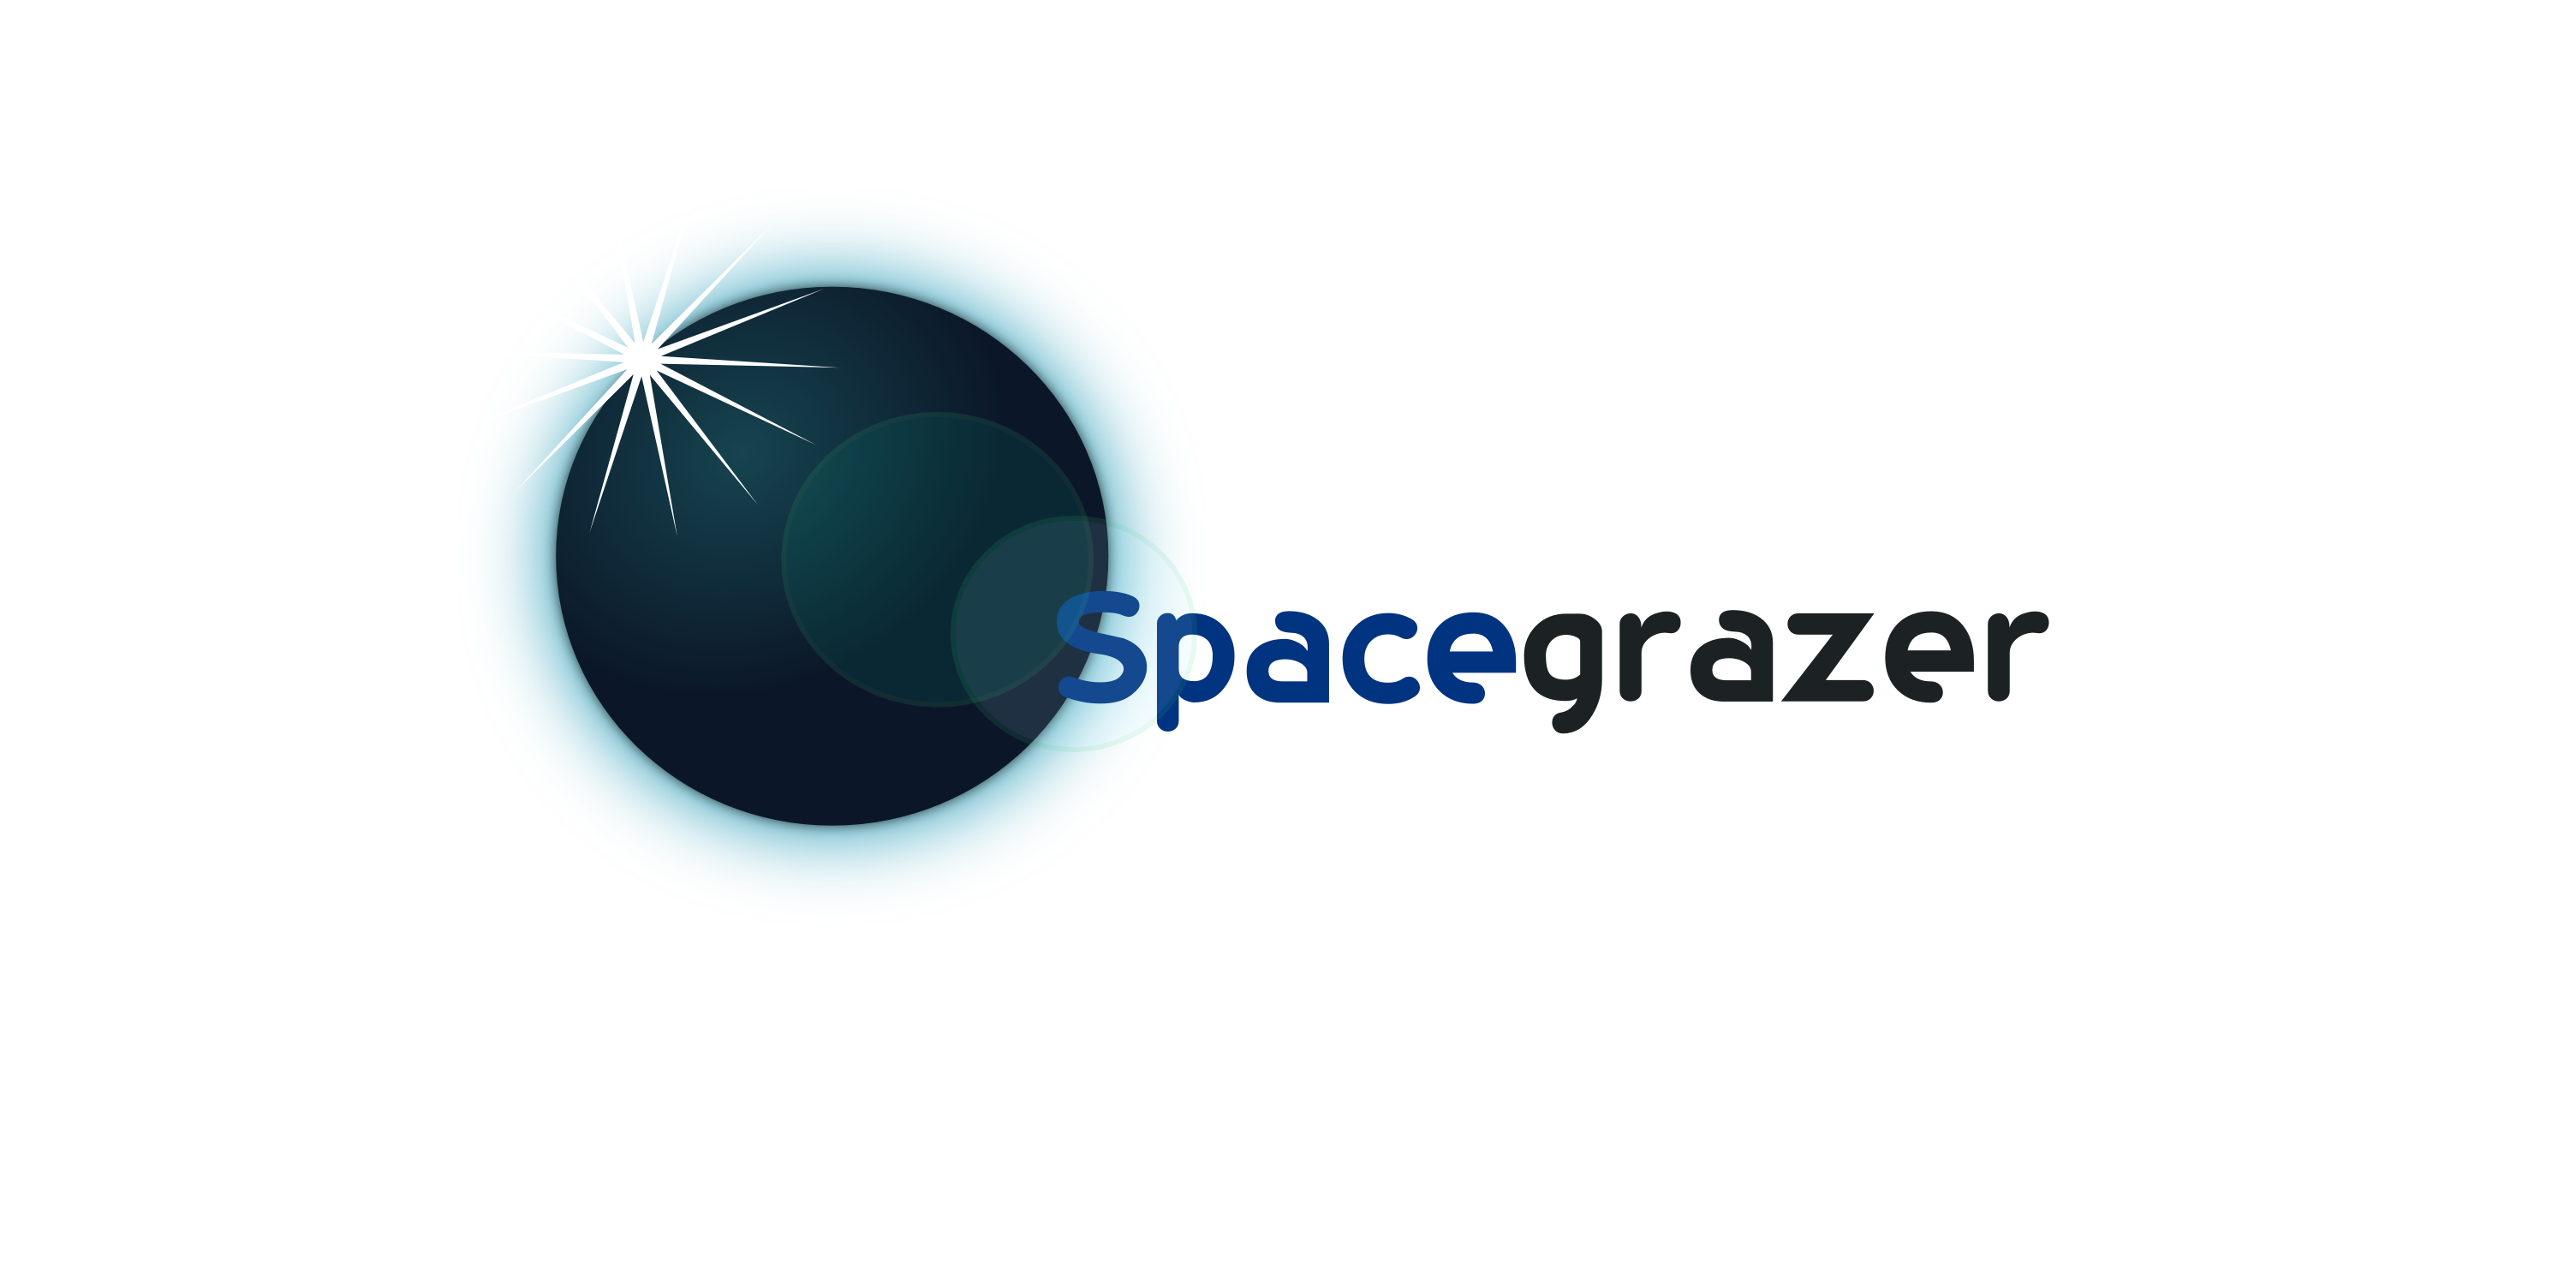 Logo Design by Arindam Khanda - Entry No. 135 in the Logo Design Contest Fun Logo Design for Spacegrazer.